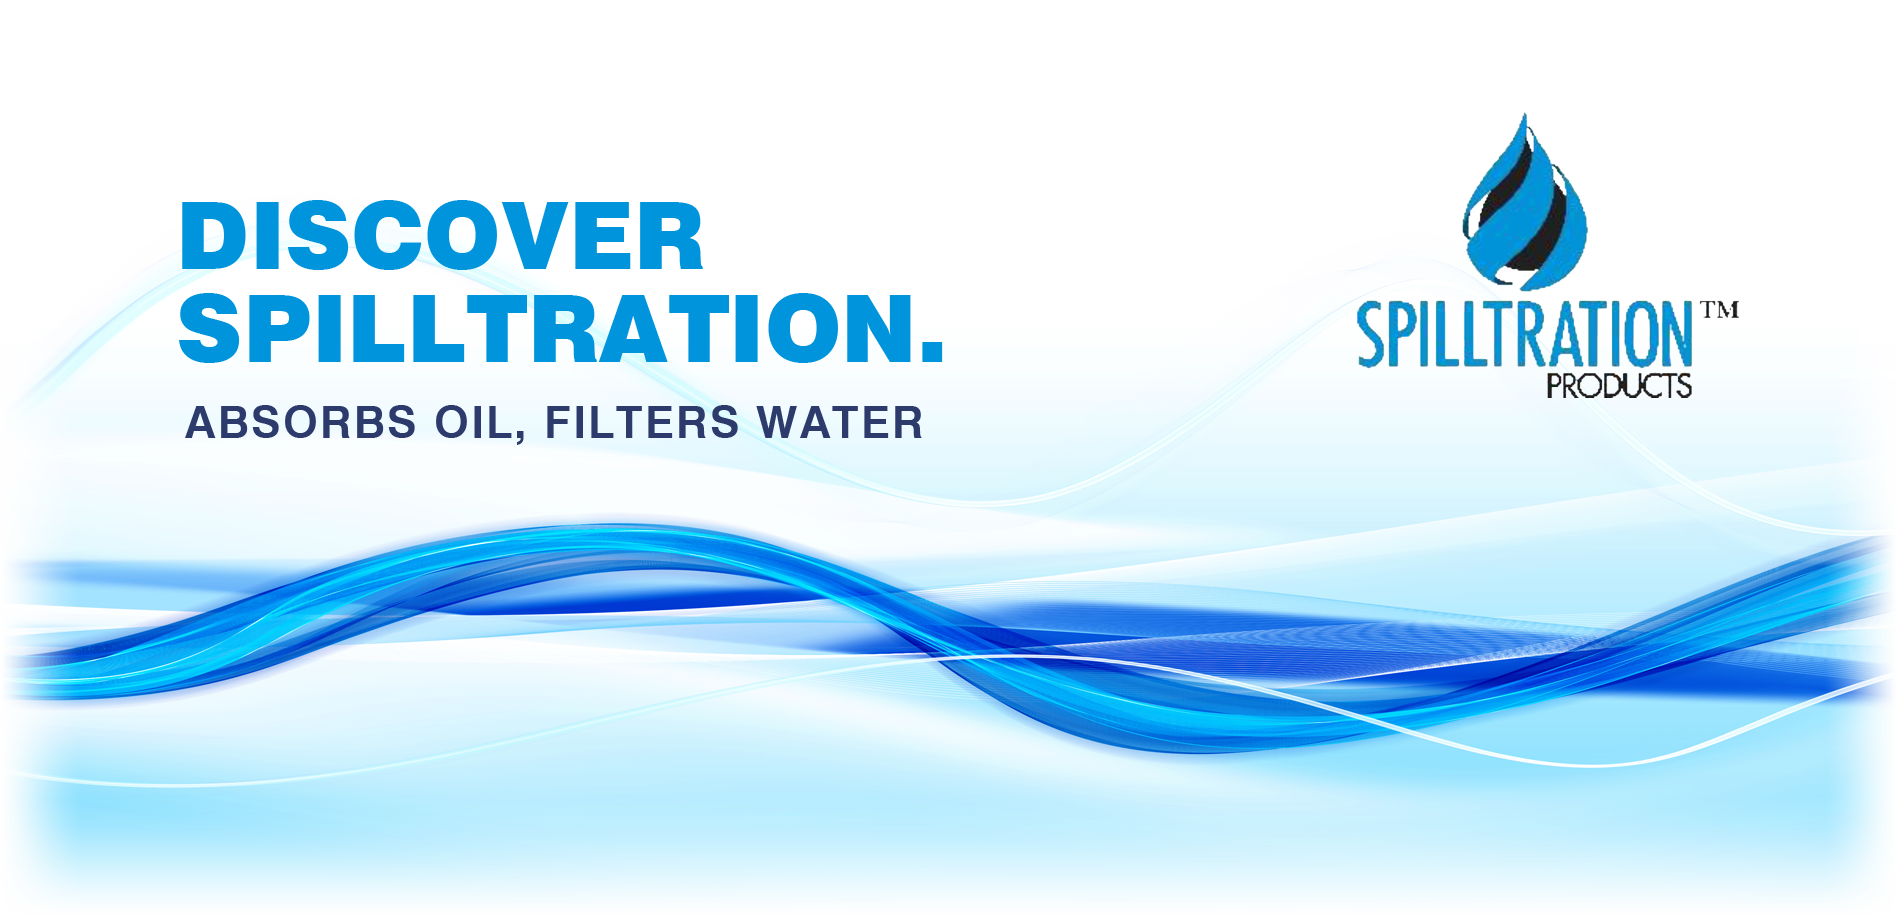 Spilltration products